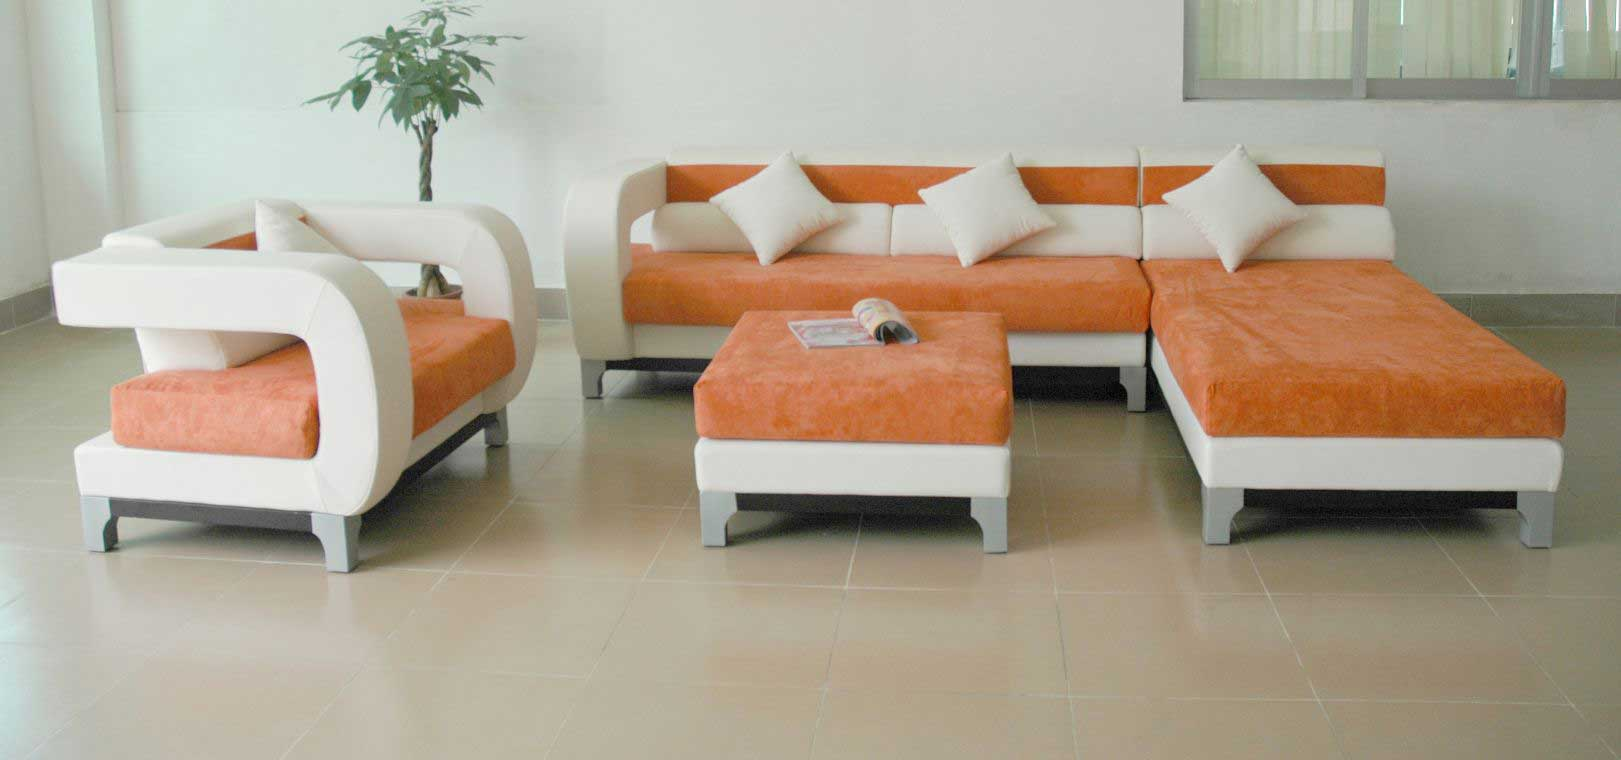 Avella modern microfiber and leather sectional seat